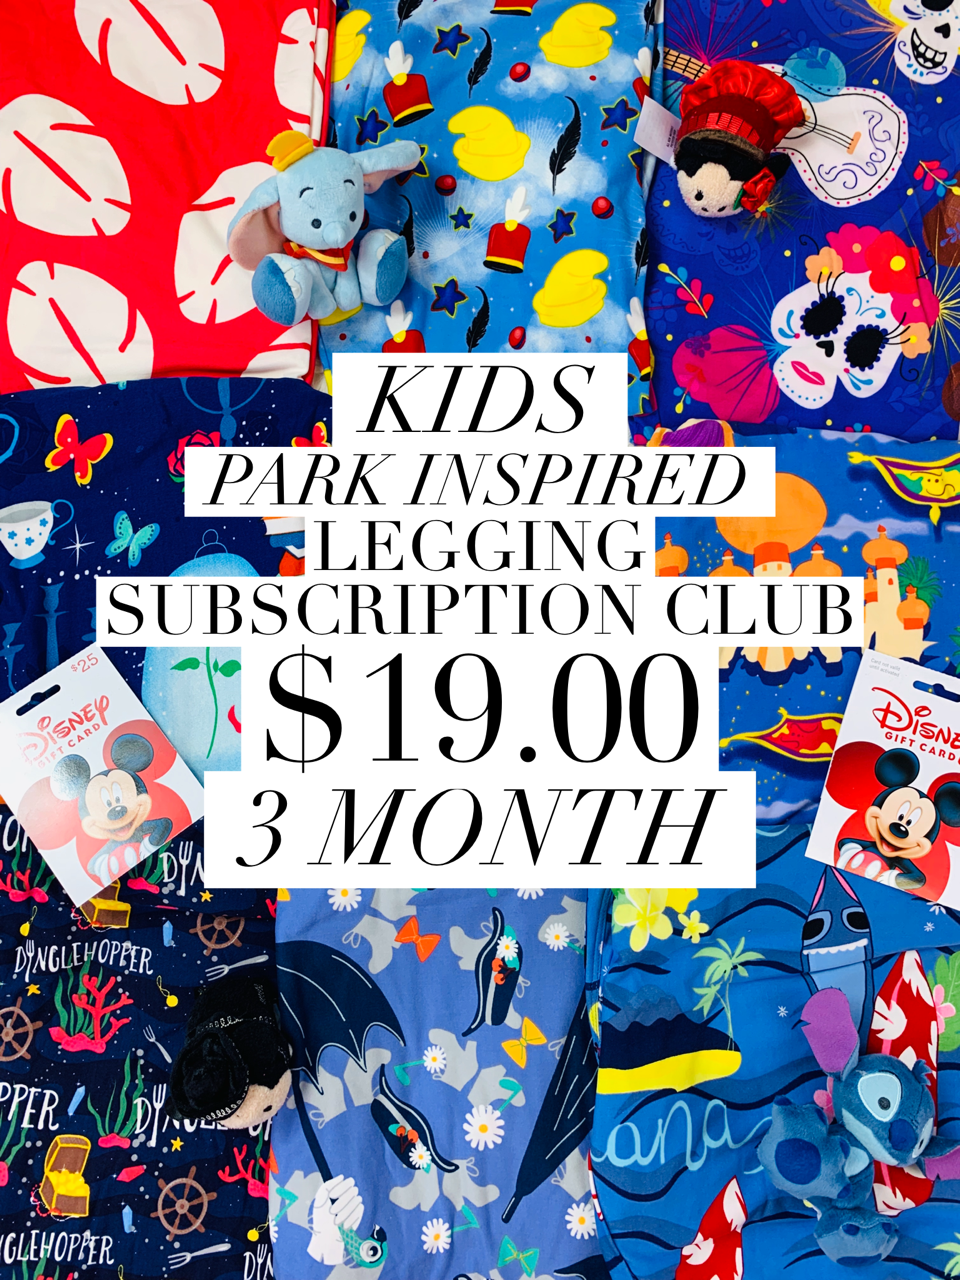 Kids Park Inspired Leggings Subscription Club - 3 Month Subscription